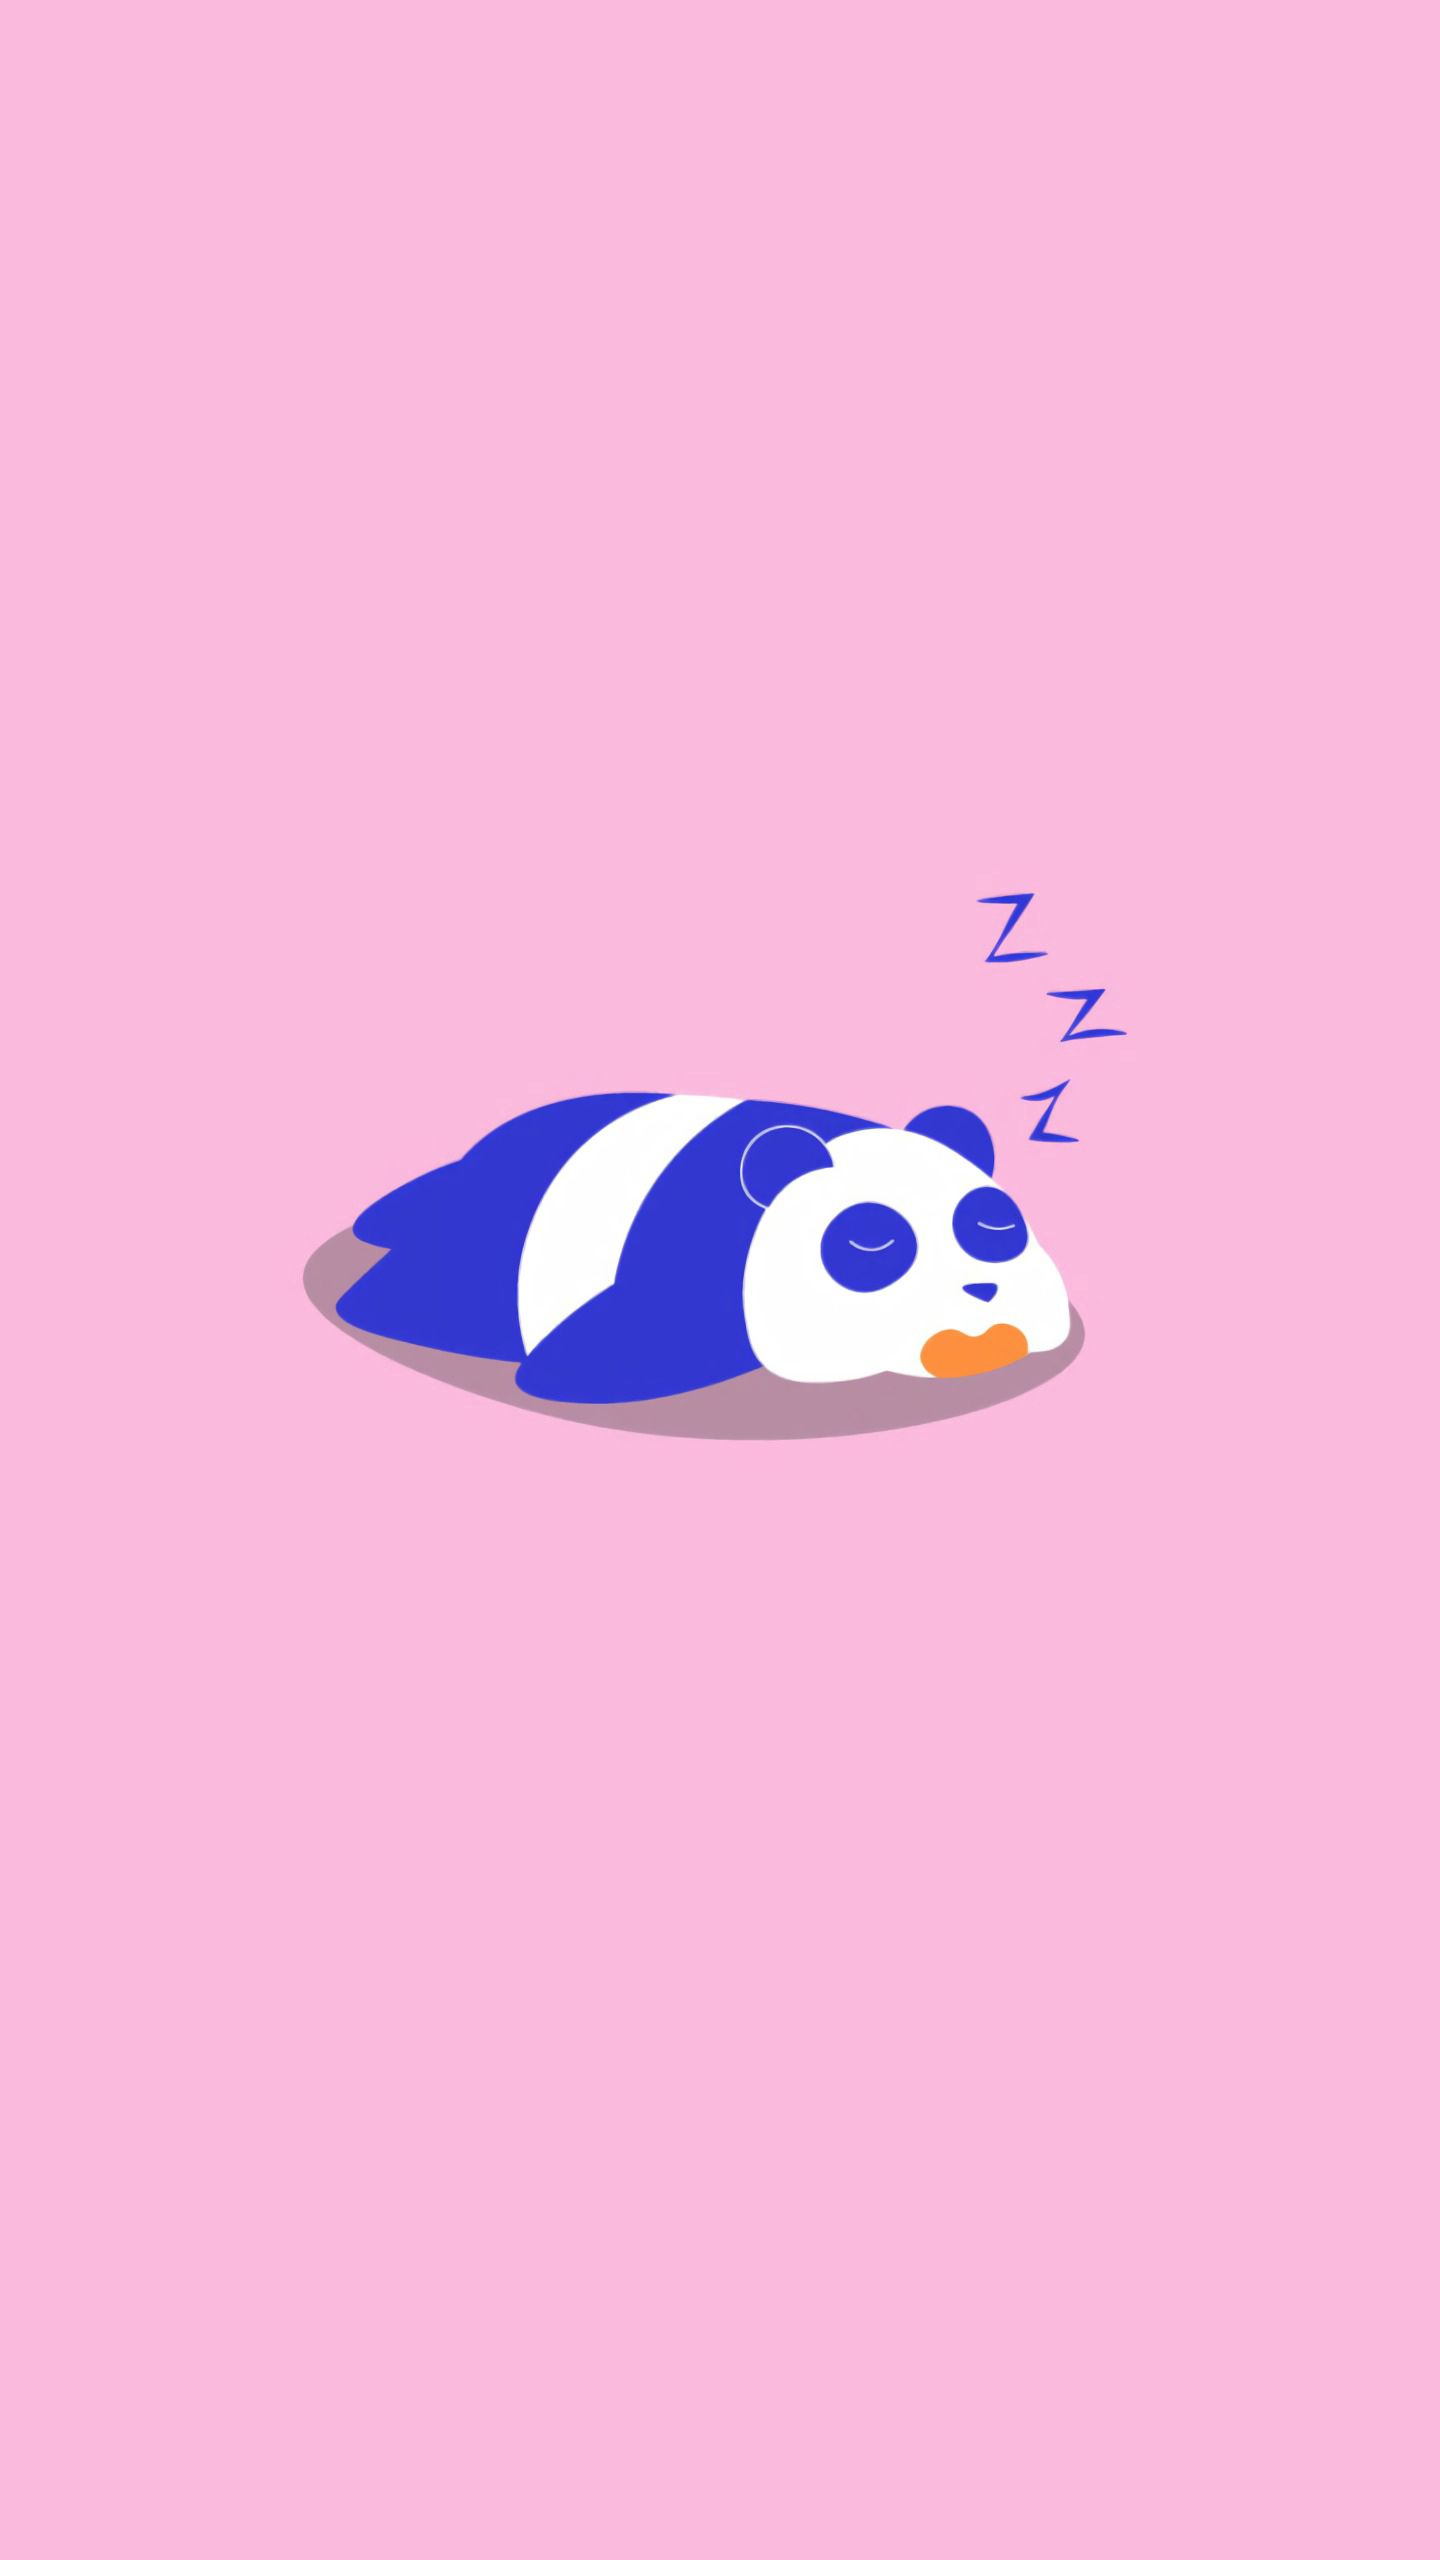 52216 download wallpaper Vector, Panda, Sleep, Dream, Art, Cool, Minimalism screensavers and pictures for free